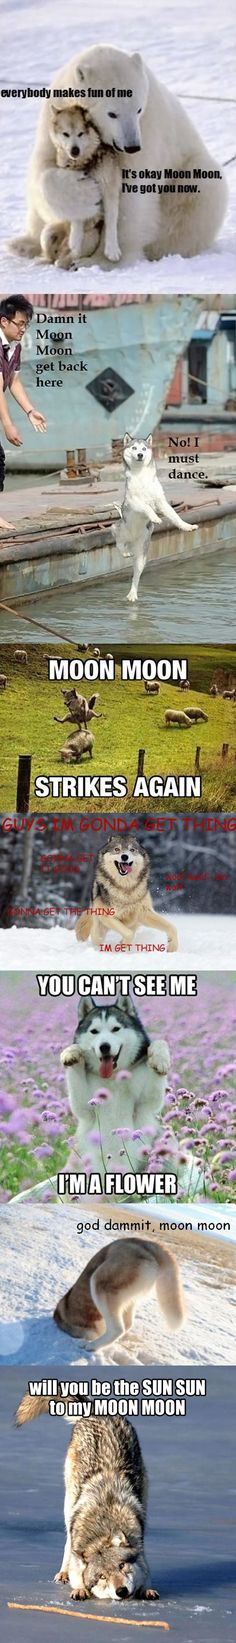 Funny pictures about The return of Moon Moon. Oh, and cool pics about The return of Moon Moon. Also, The return of Moon Moon. Animal Jokes, Funny Animal Memes, Cute Funny Animals, Dog Memes, Funny Animal Pictures, Funny Cute, Funny Dogs, The Funny, Funny Husky